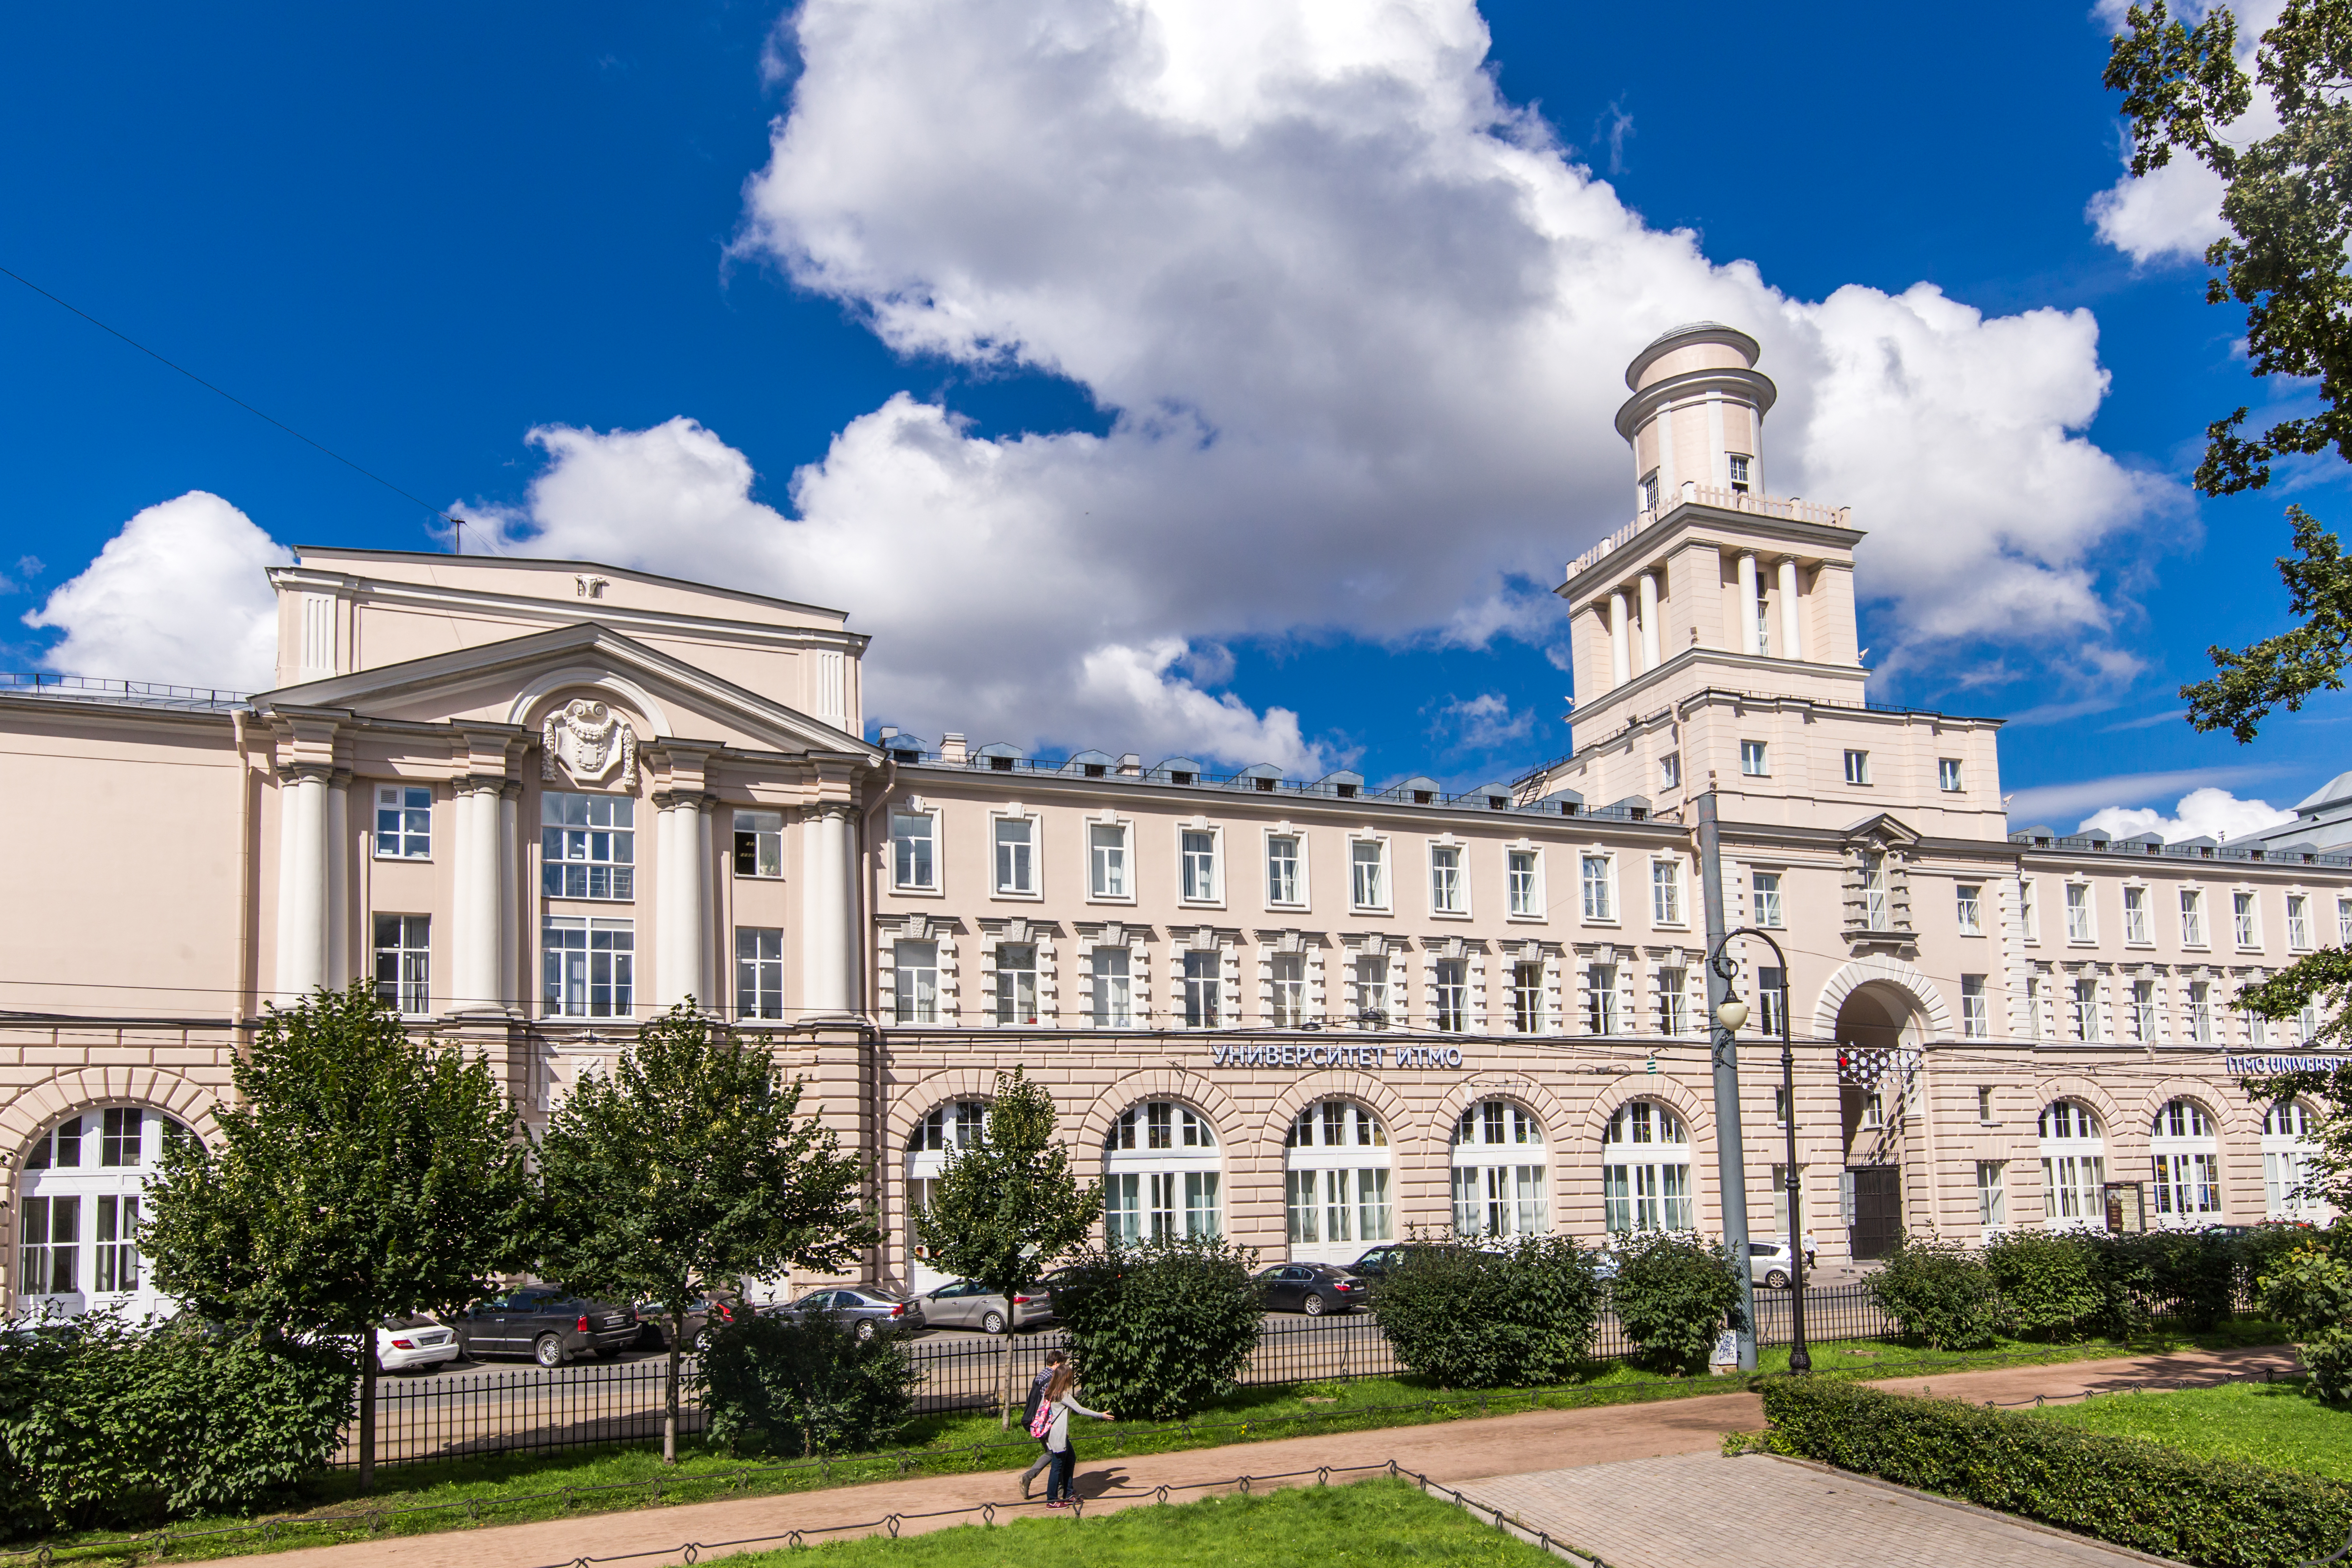 Most Russian universities (9 out of 13) have seen their standings slip in comparison to last year. Photo: ITMO University in St. Petersburg.